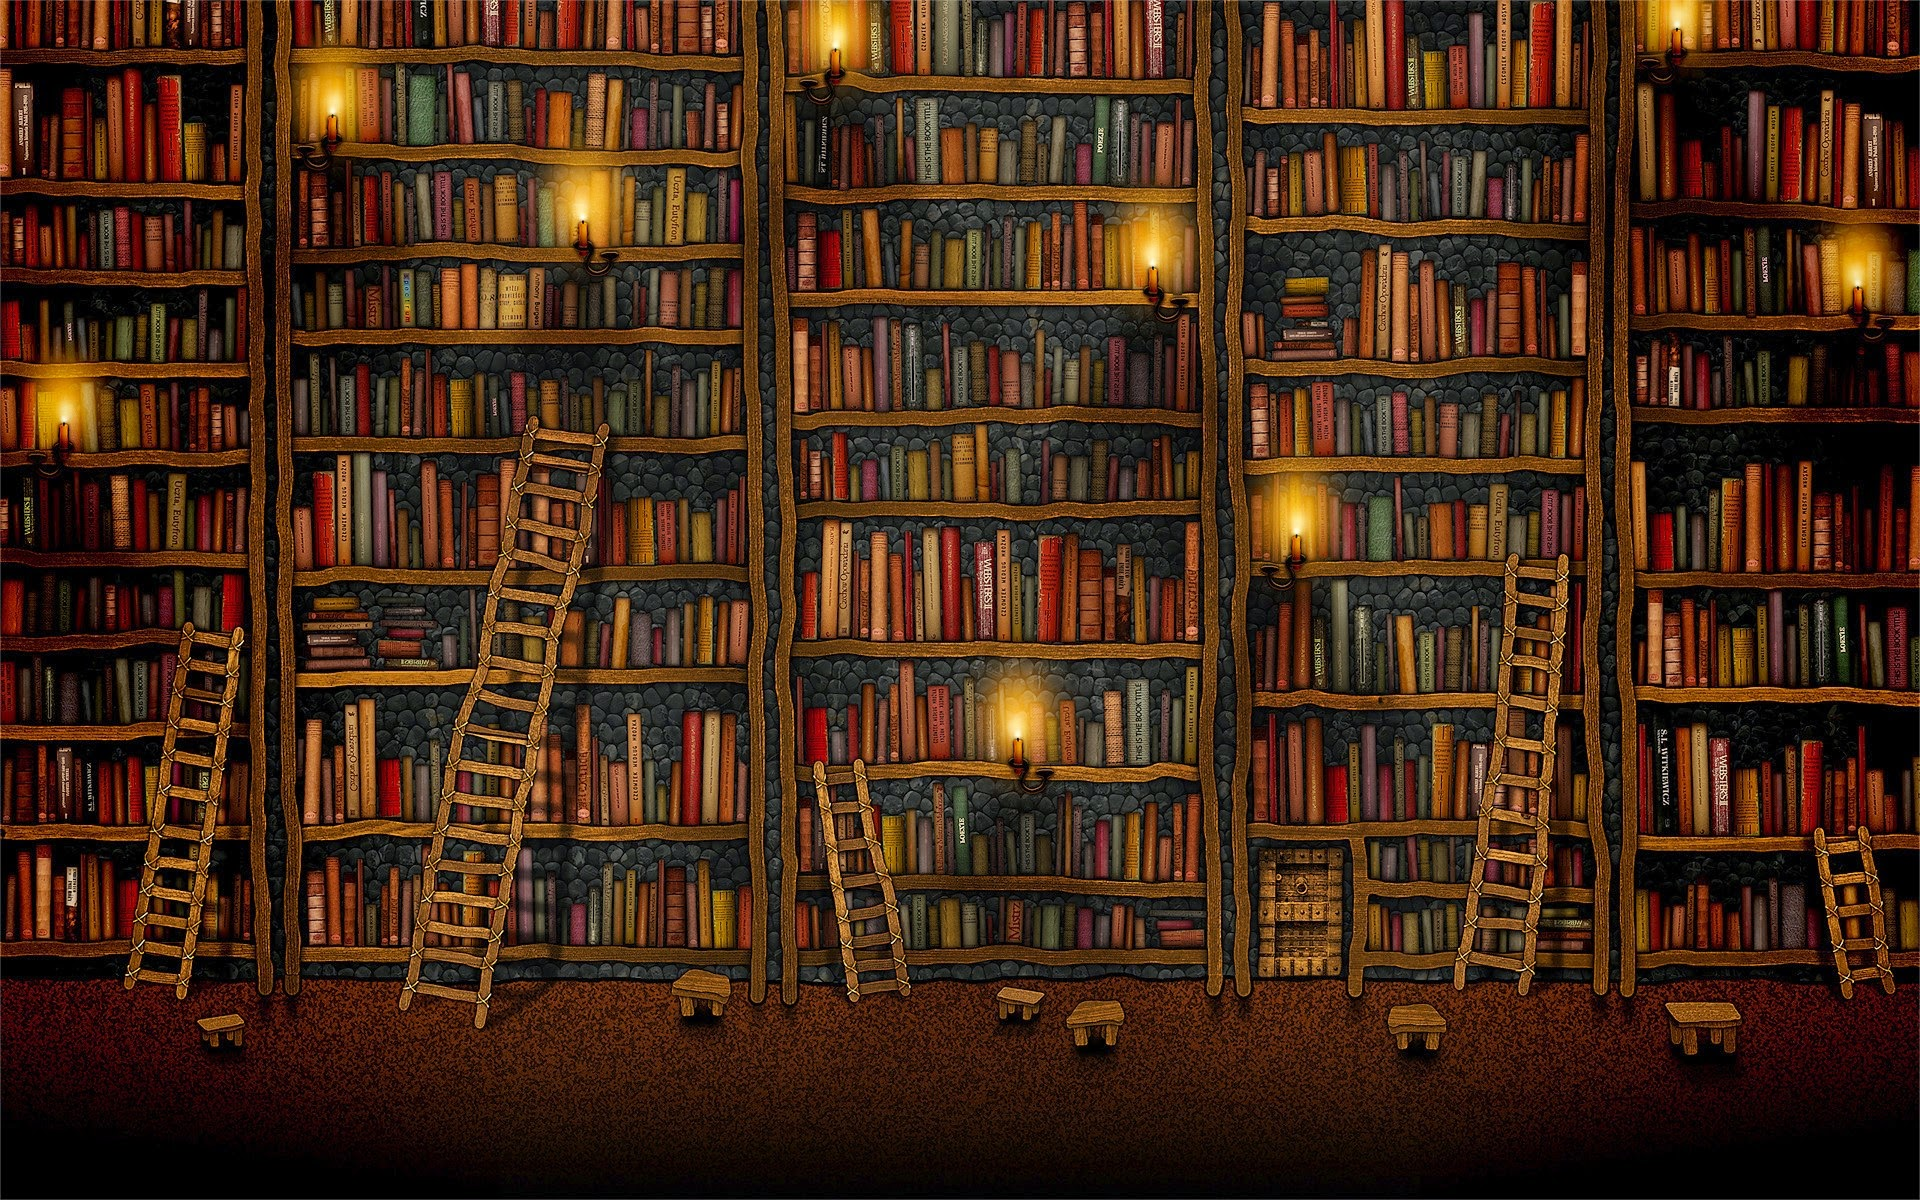 Library Books Wallpaper Old book library ladder 1920x1200